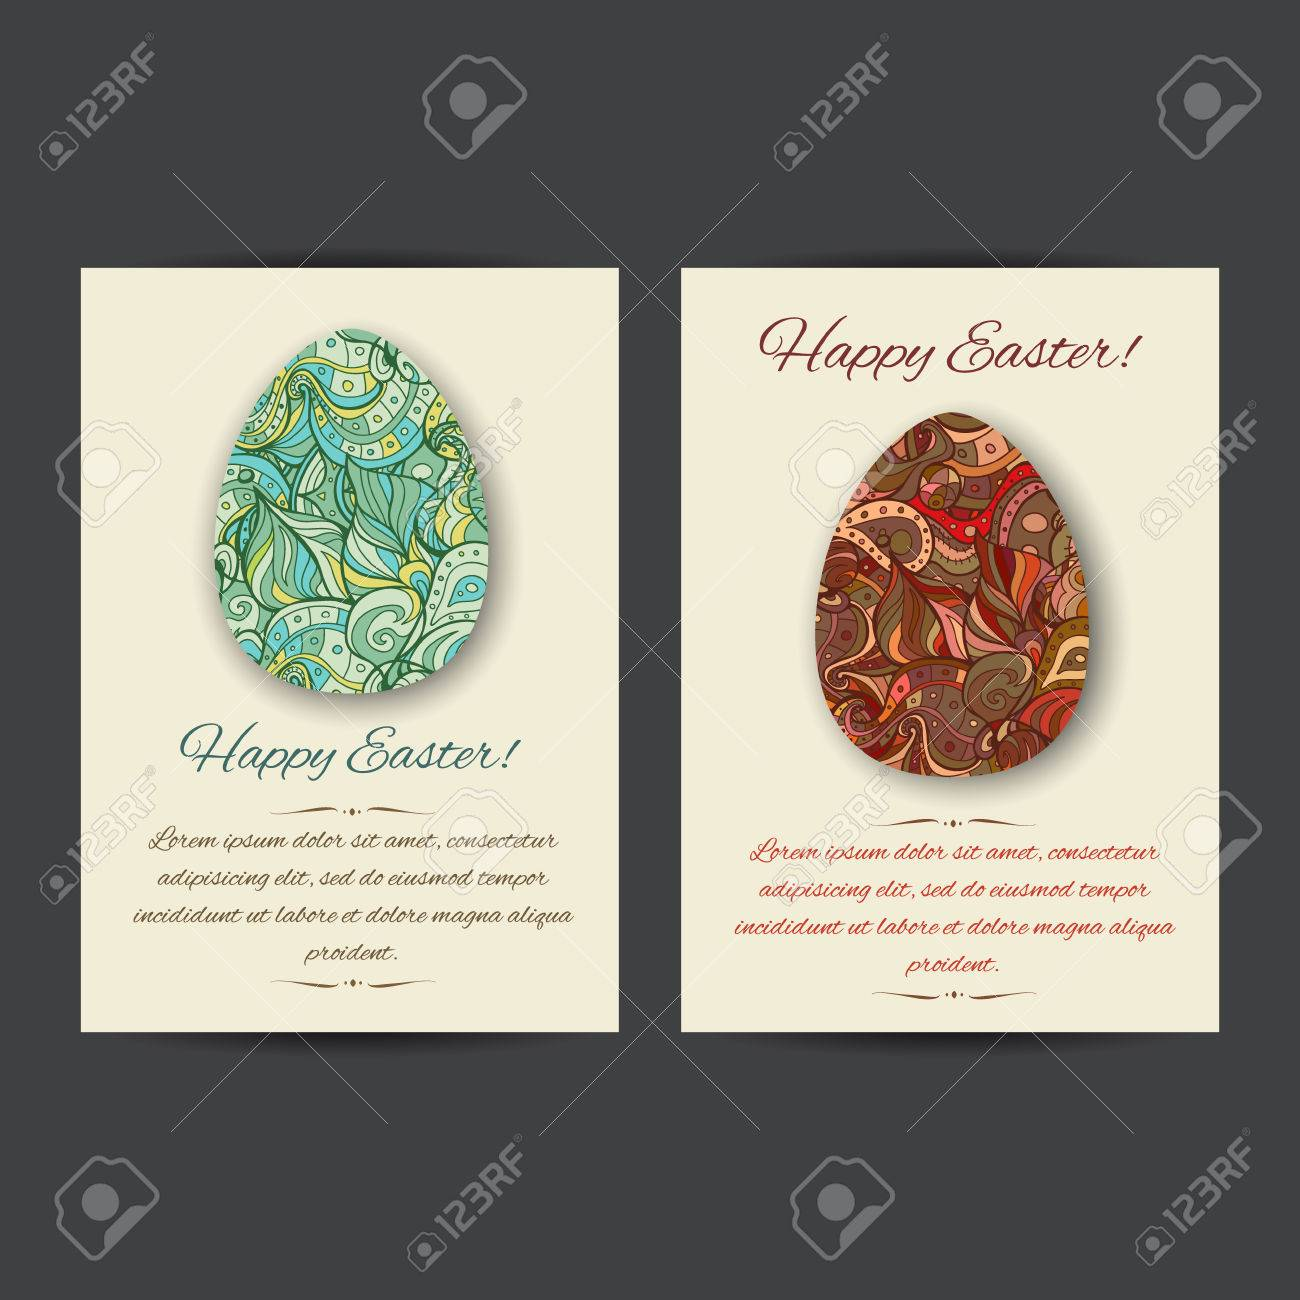 Happy Easter Holiday Card Templates Set Of Two Card Template